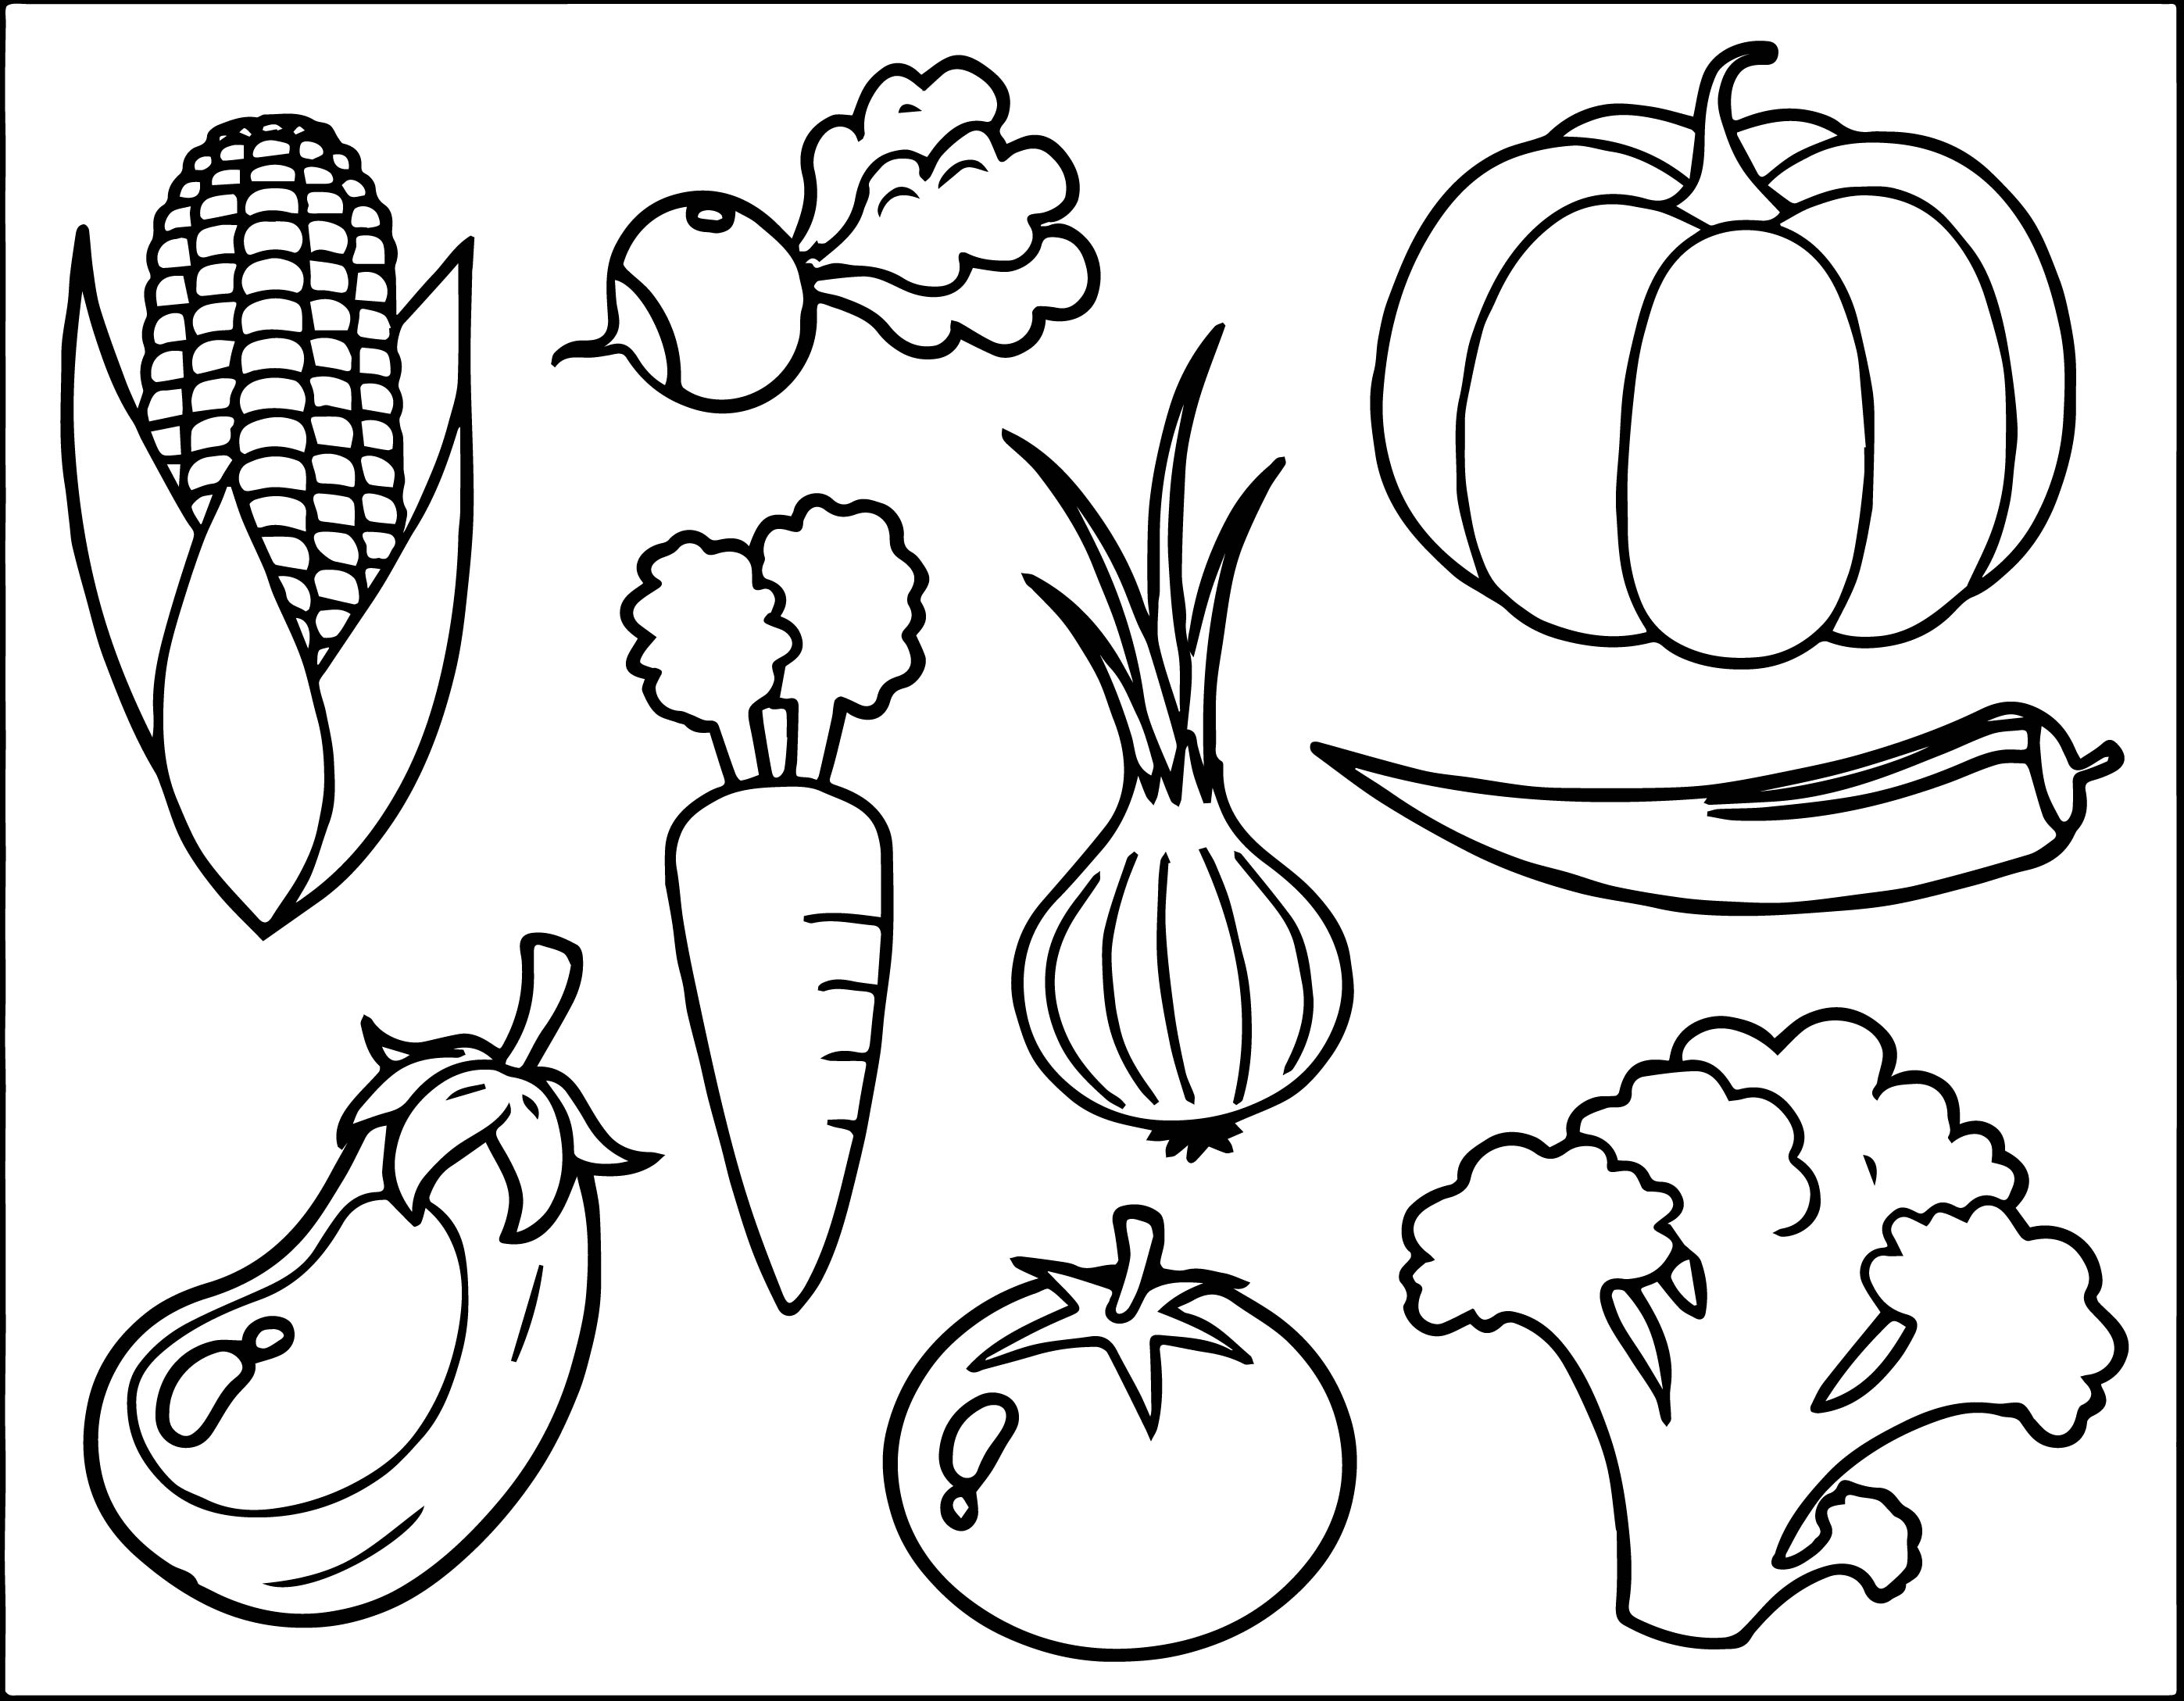 Cornucopia Fruit Coloring Pages At Getdrawings